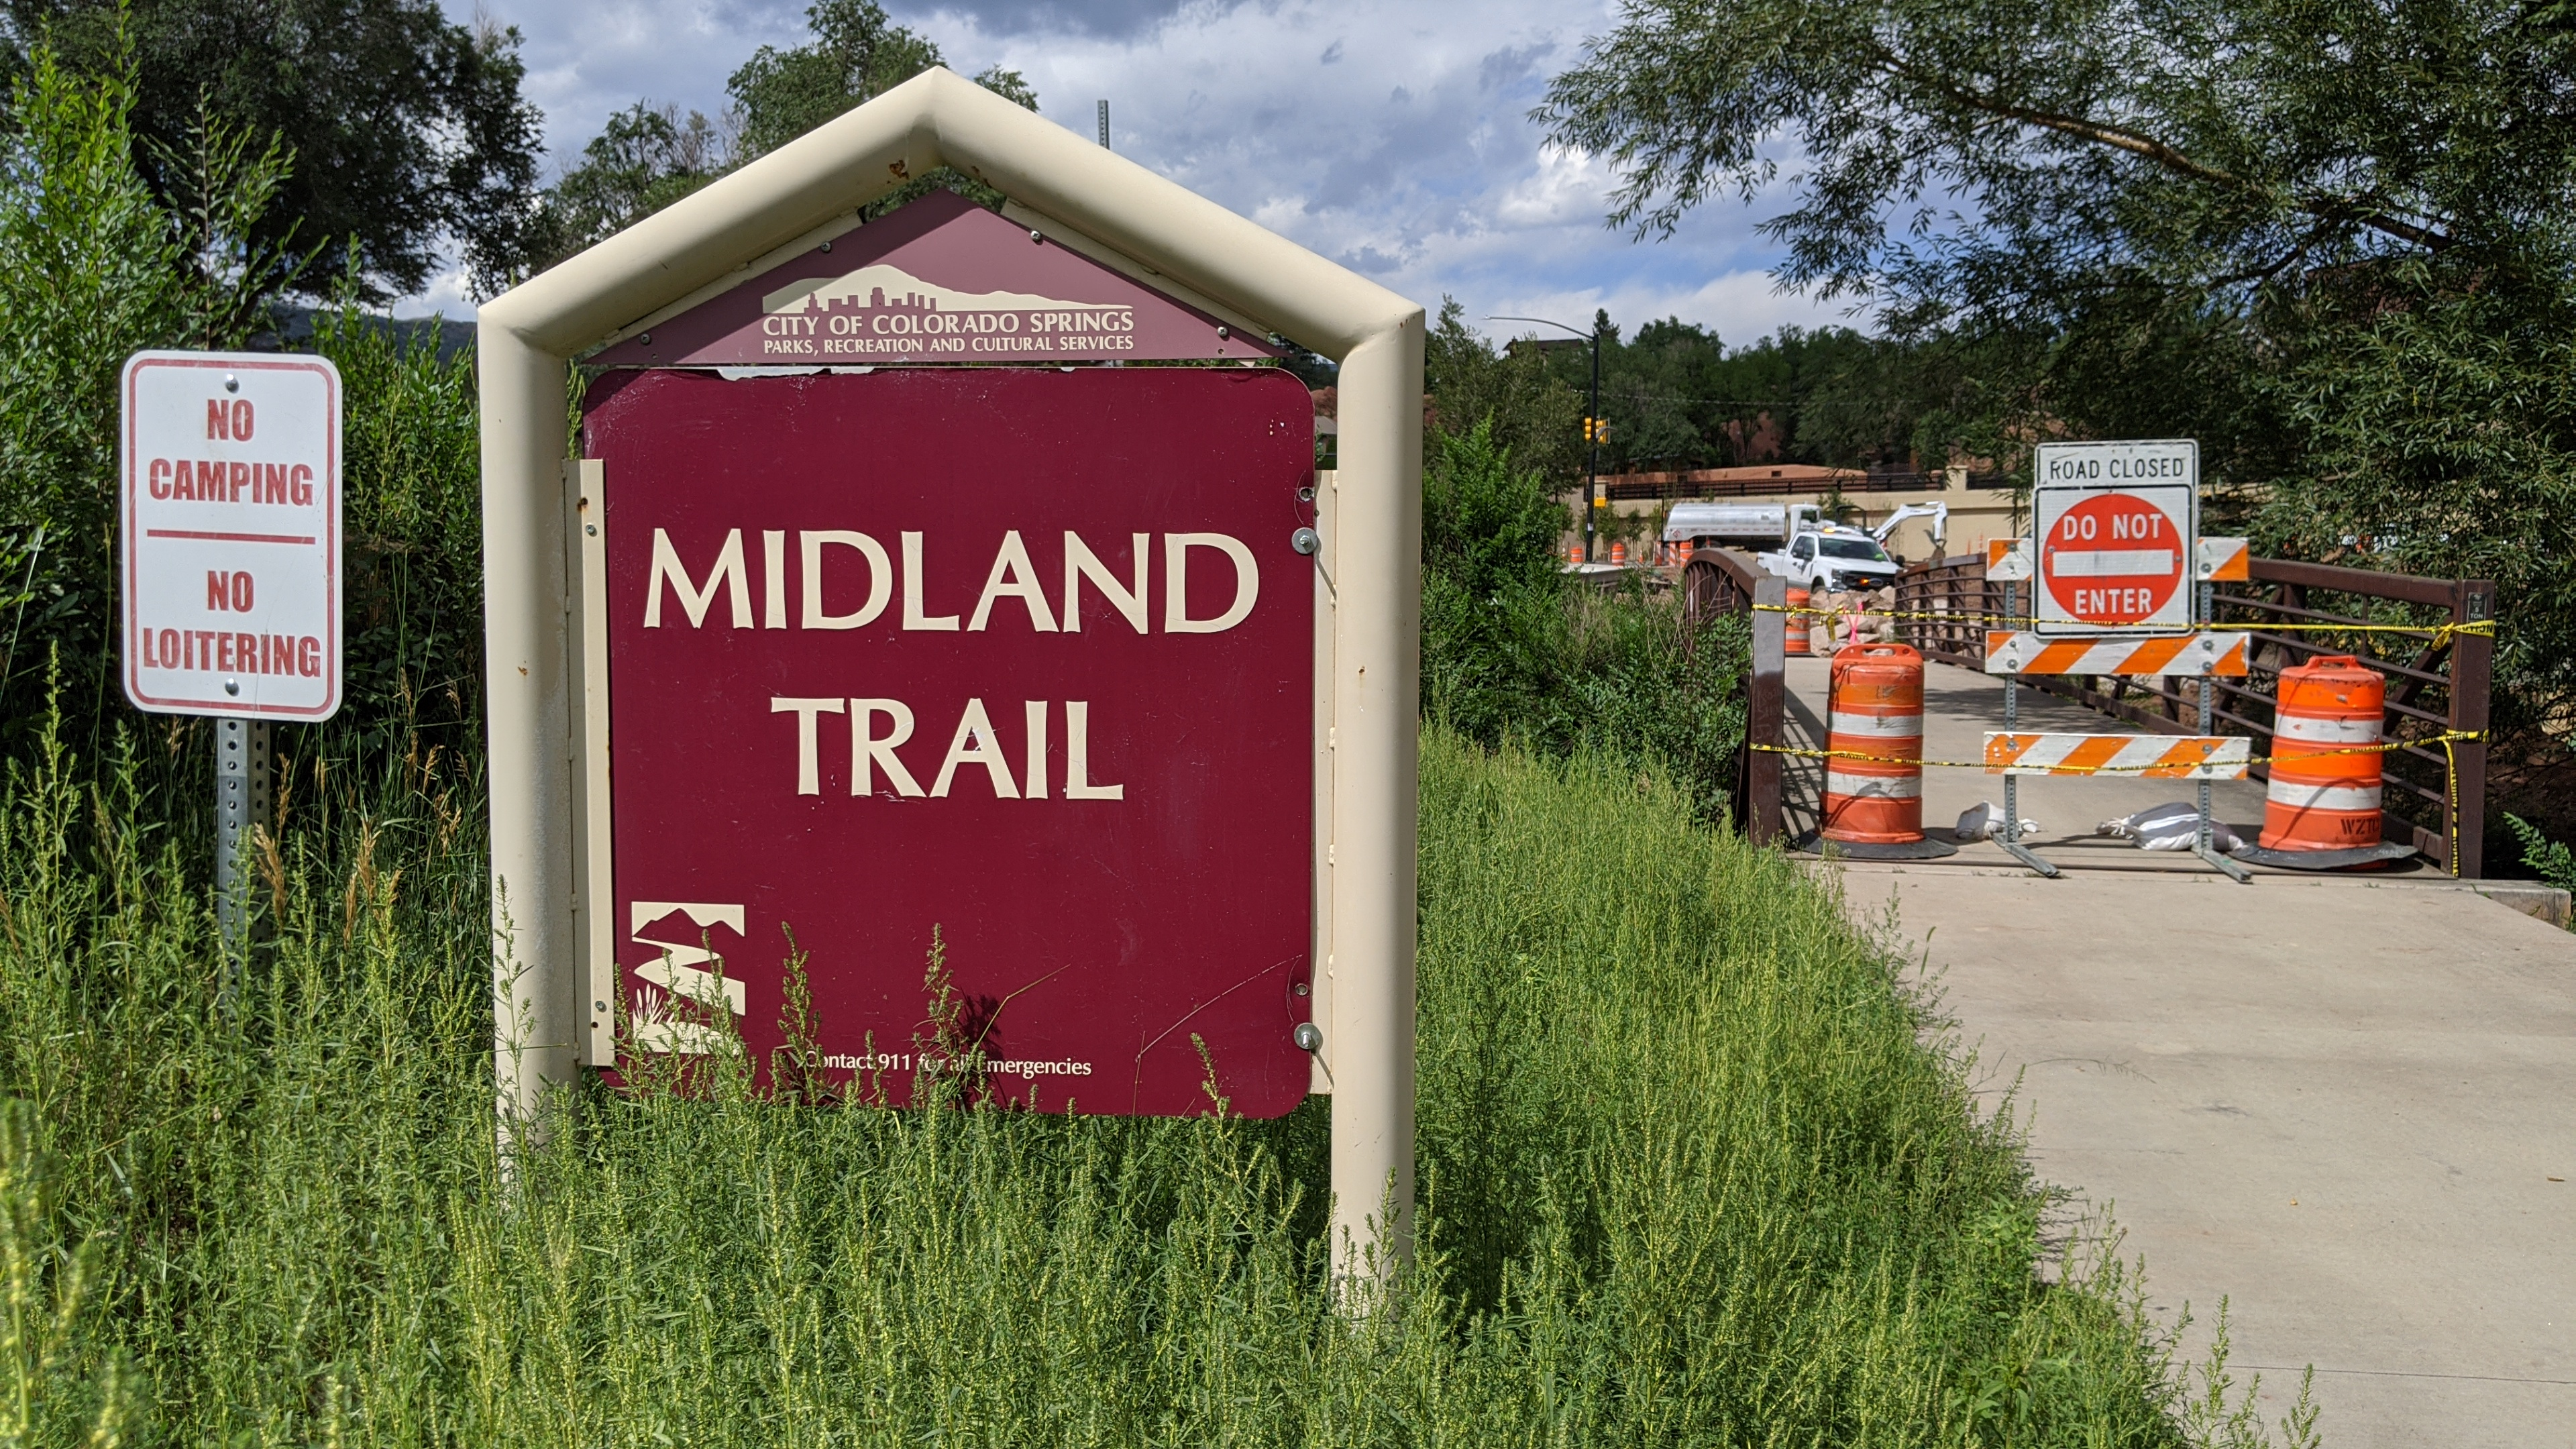 Midland Trail Closure